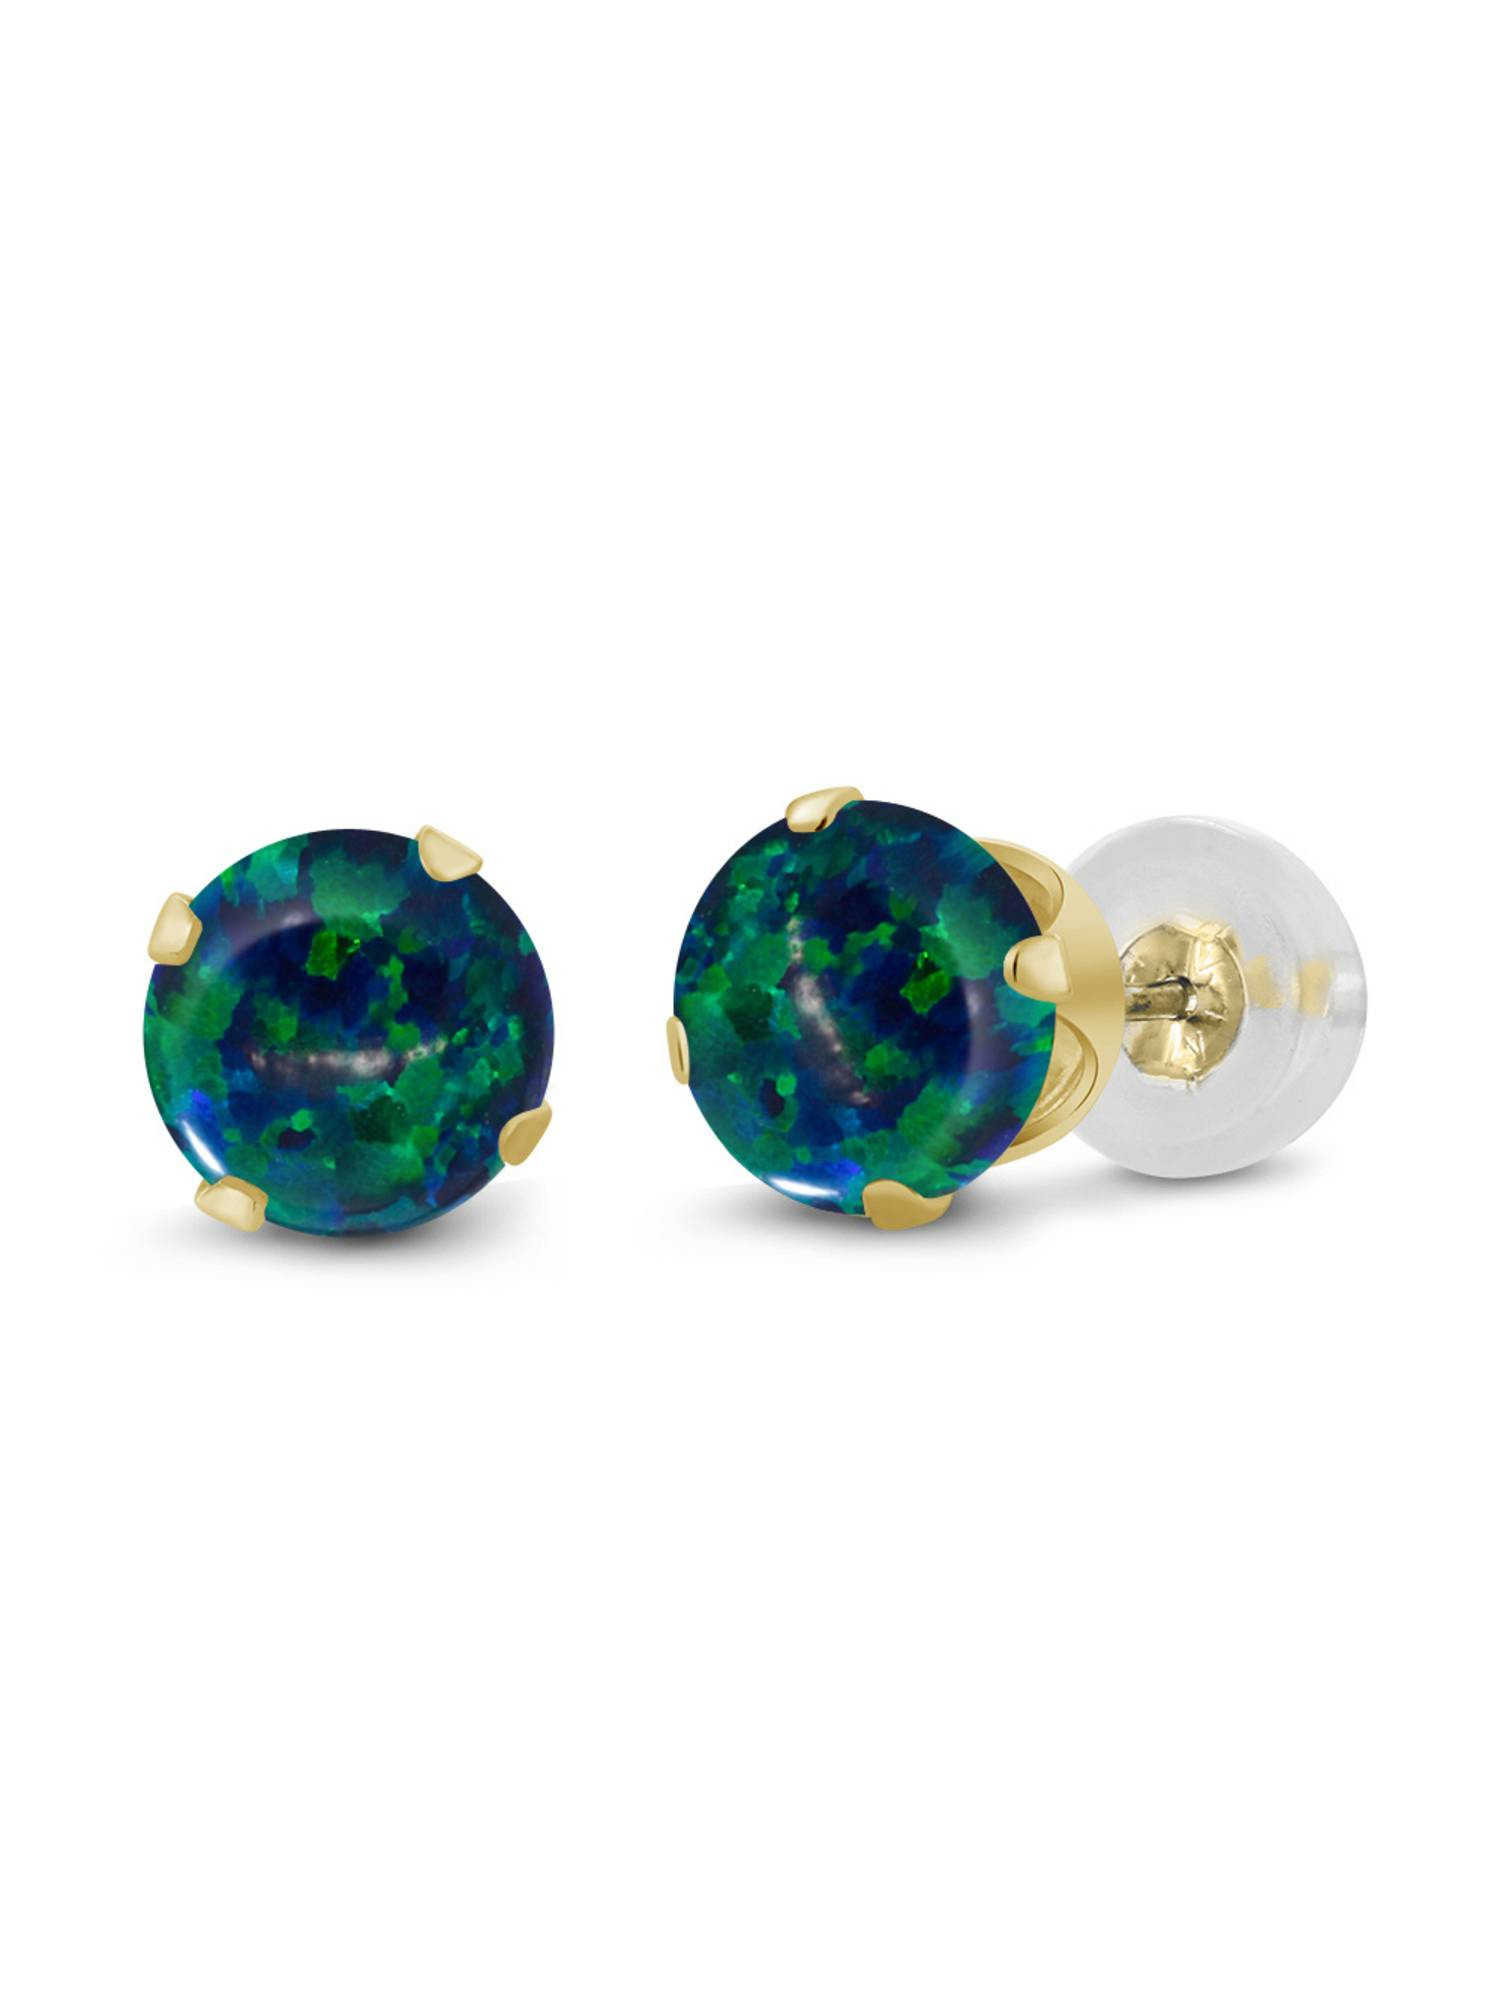 0.50 Ct Round Cabochon 4mm Green Simulated Opal 14K Yellow Gold Stud Earrings by